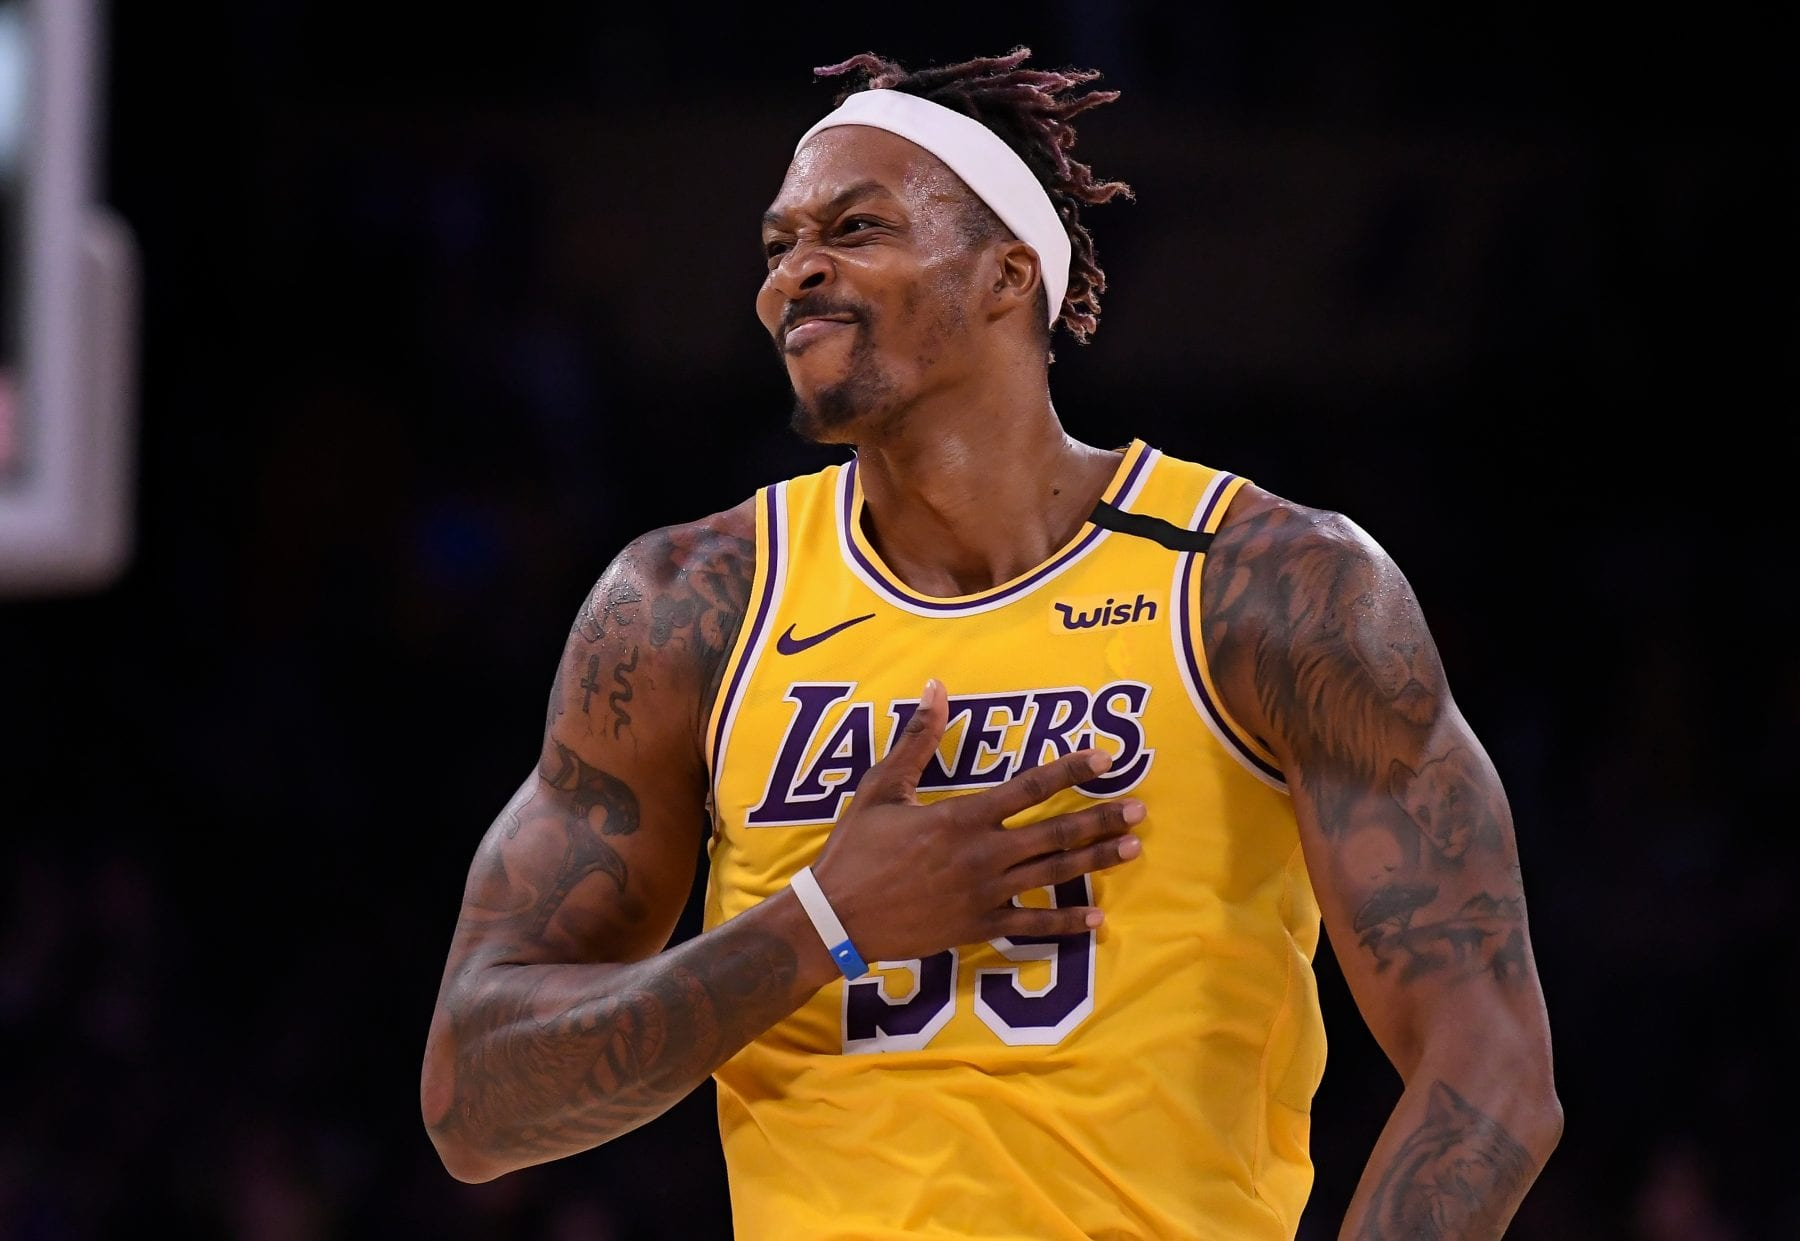 Dwight Howard Explains His 'Staying with the Lakers' Tweet